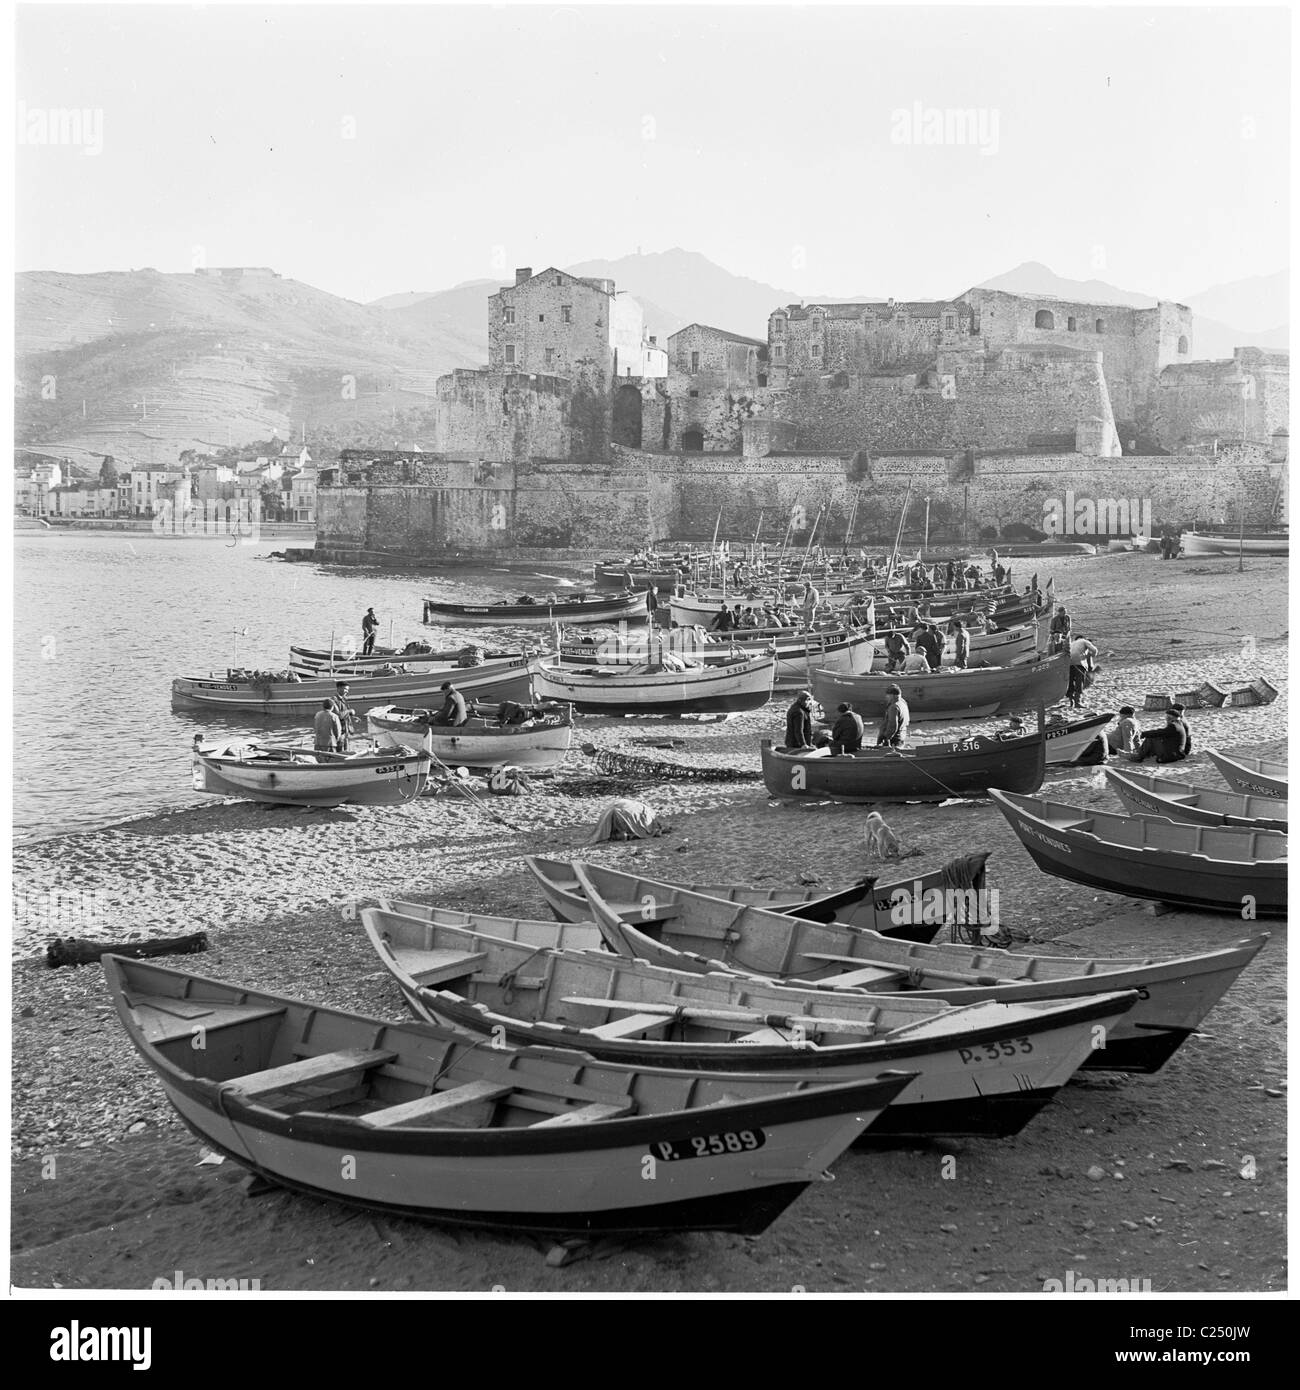 1950s, France. Fishing boats moored on beach at Collioures, France with old fortress in distance in this historical - Stock Image